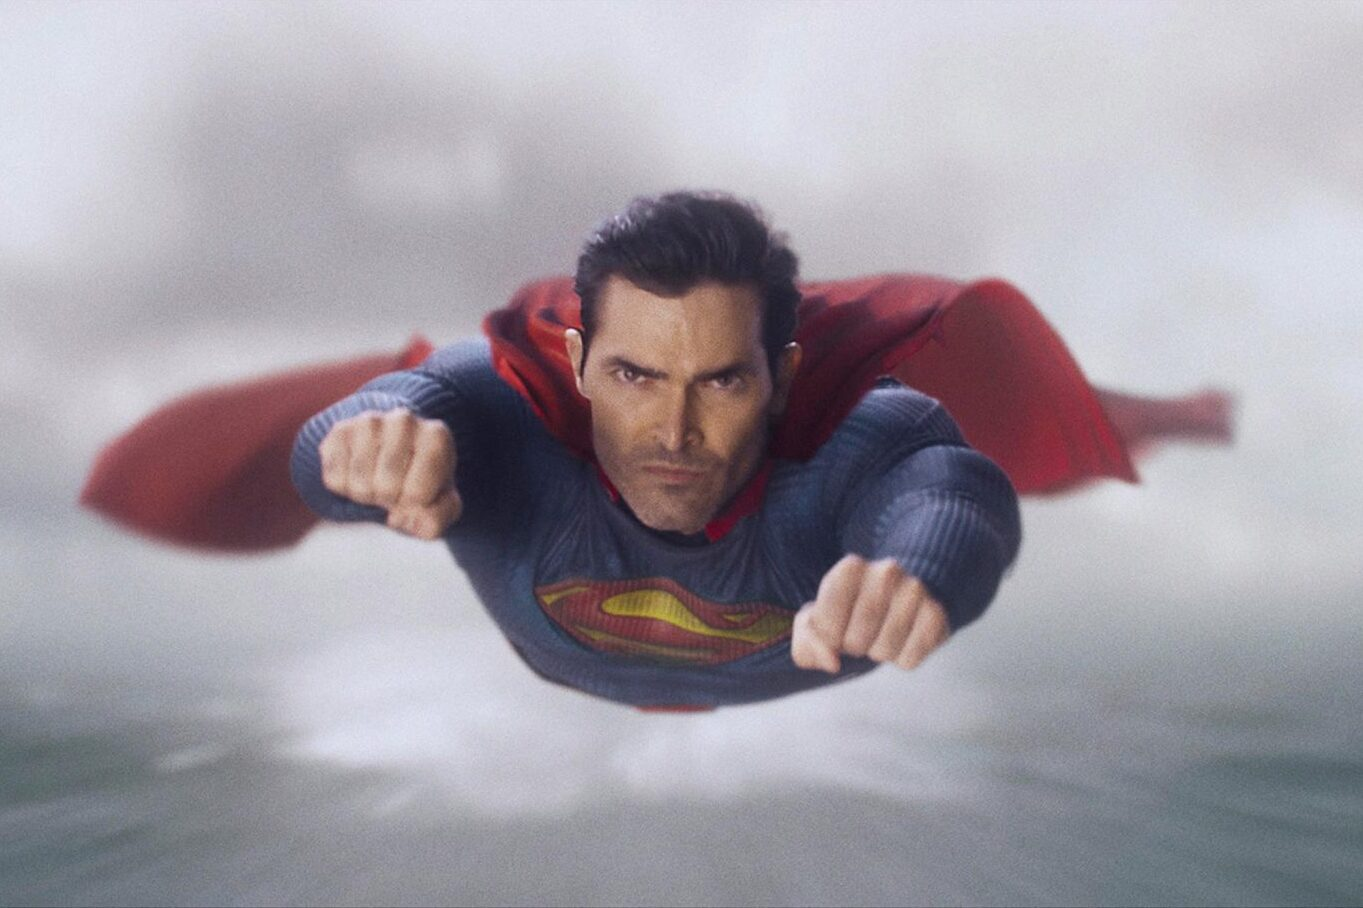 Superman And Lois Delivers A Better Clark Kent Than Henry Cavill